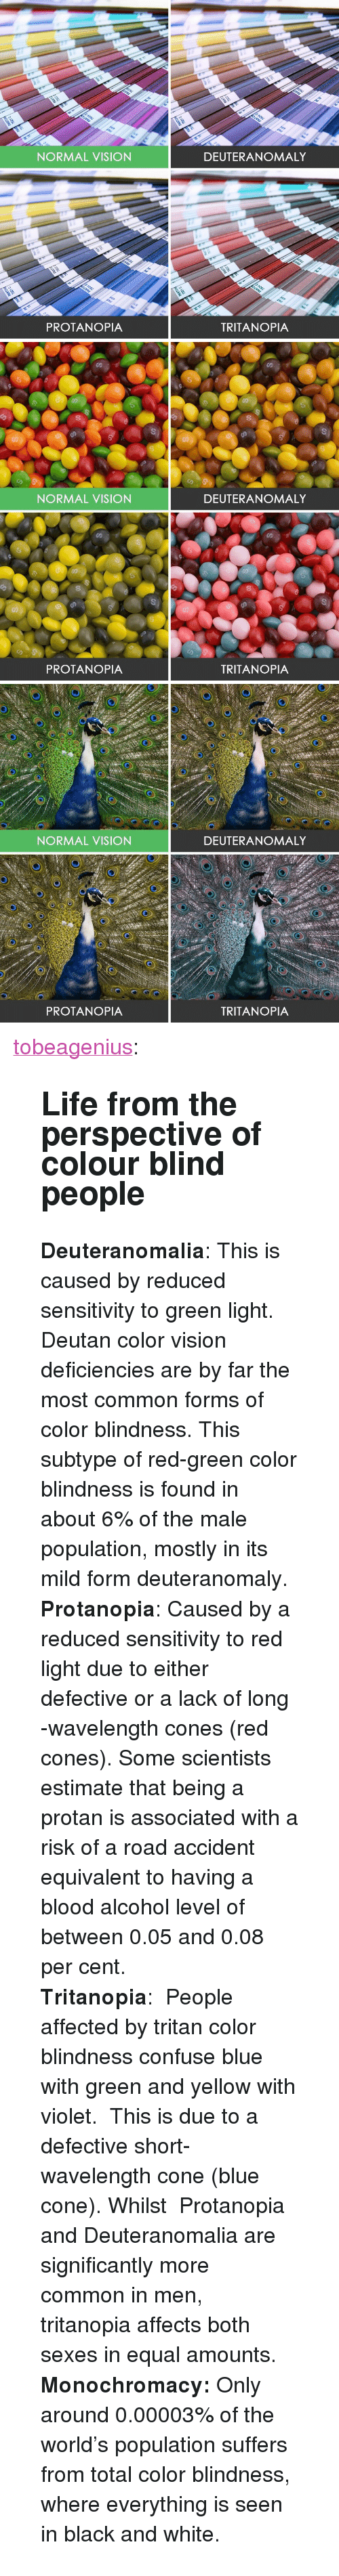 """Life, Tumblr, and Vision: NORMAL VISION  DEUTERANOMALY  PROTANOPIA  TRITANOPIA   ce  NORMAL VISION  DEUTERANOMALY  PROTANOPIA  TRITANOPIA   NORMAL VISION  DEUTERANOMALY  e)  PROTANOPIA  TRITANOPIA <p><a href=""""http://tobeagenius.tumblr.com/post/157332646070/life-from-the-perspective-of-colour-blind-people"""" class=""""tumblr_blog"""">tobeagenius</a>:</p><blockquote> <h2>Life from the perspective of colour blind people</h2> <p><b>Deuteranomalia</b>: This is caused by reduced sensitivity to green light. Deutan color vision deficiencies are by far the most common forms of color blindness. This subtype of red-green color blindness is found in about 6% of the male population,   mostly in its mild form deuteranomaly.   <br/></p> <p><b>  Protanopia</b>: Caused by a reduced sensitivity to red light due to either defective or a lack of long   -wavelength cones (red cones). Some scientists estimate that being a protan is associated with a risk of a road accident equivalent to having a blood alcohol level of between 0.05 and 0.08 per cent.  <br/></p> <p><b>Tritanopia</b>: People affected by tritan color blindness confuse blue with green and yellow with violet. This is due to a defective short-wavelength cone (blue cone). Whilst  Protanopia andDeuteranomalia are significantly more common in men, tritanopia affects both sexes in equal amounts.</p> <p><b>  Monochromacy: </b>Only around 0.00003% of the world's population suffers from total color blindness, where everything is seen in black and white.</p> </blockquote>"""